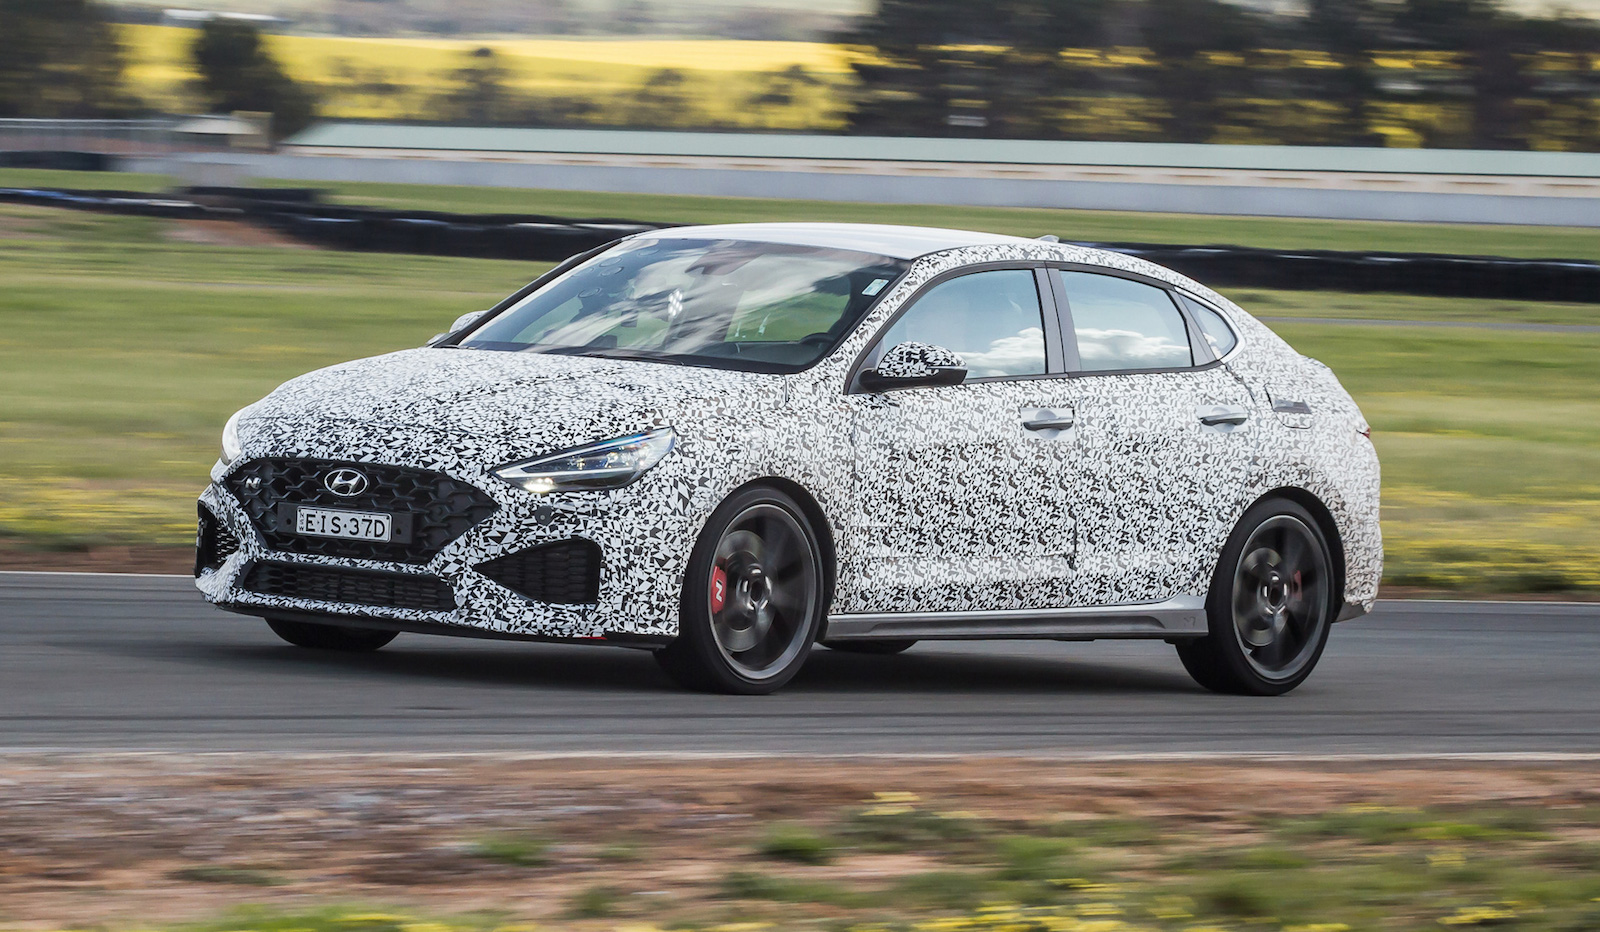 2021 Hyundai i30 N DCT prototype review (video)